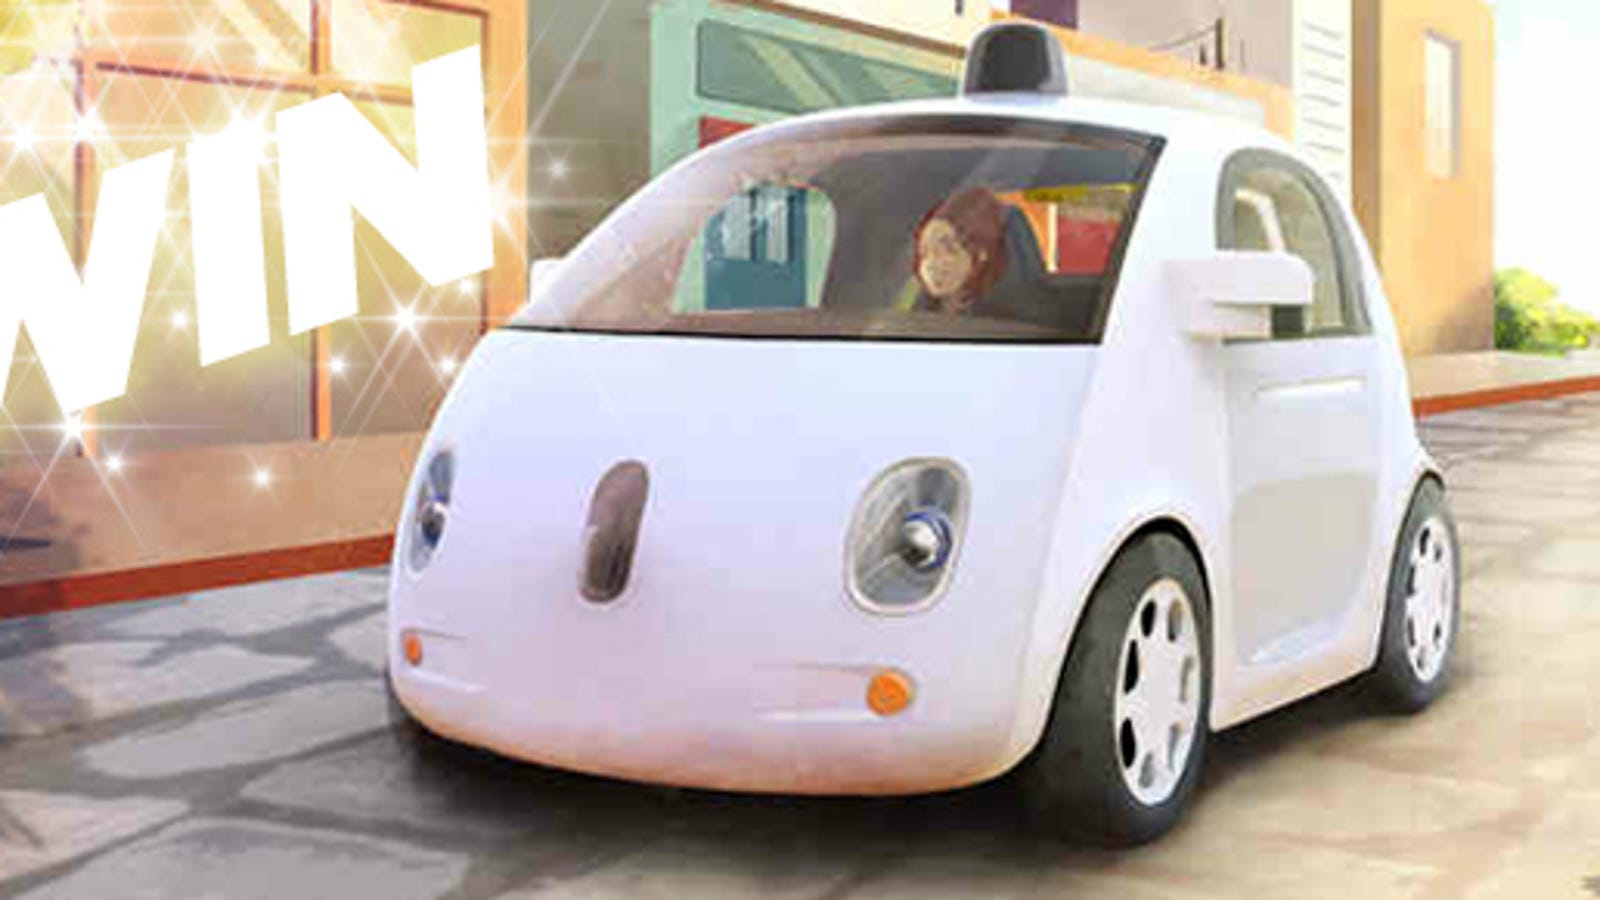 Google's Self-Driving Car Is the Future We Need